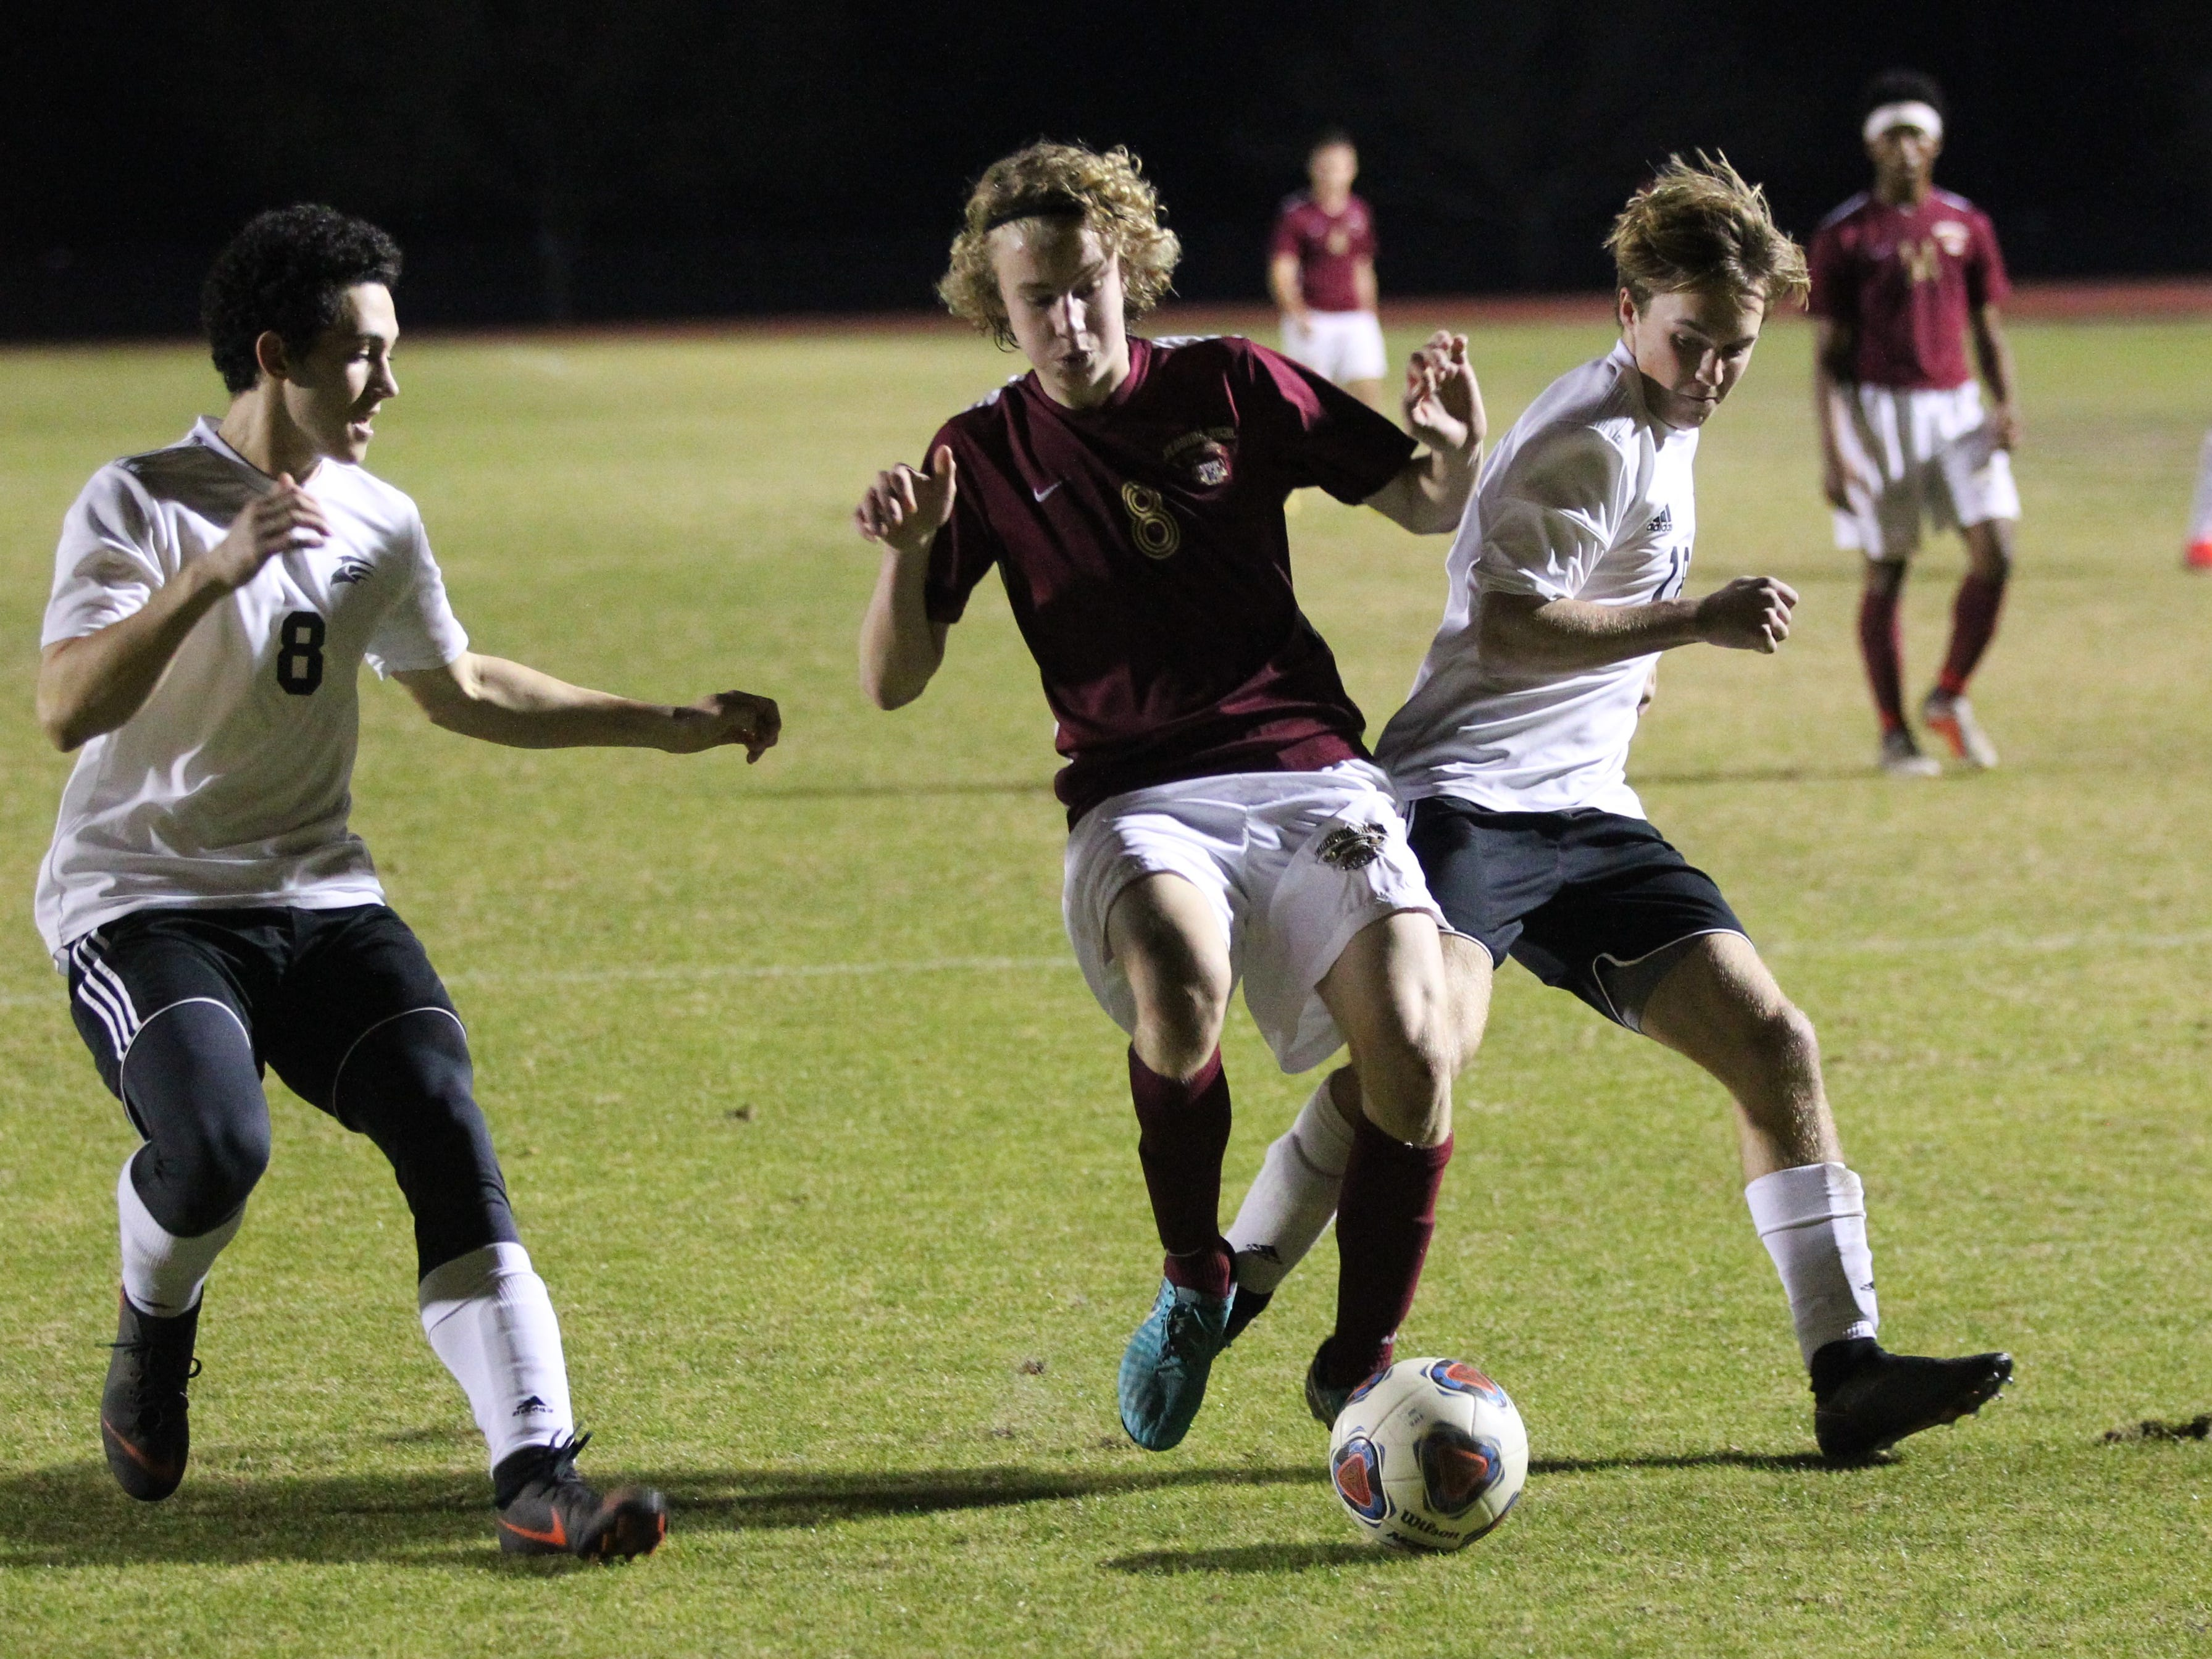 Florida High's Beecher Lewis fight for possession as Florida High's boys soccer team beat South Walton 2-0 during a Region 1-2A quarterfinal on Feb. 6, 2018.